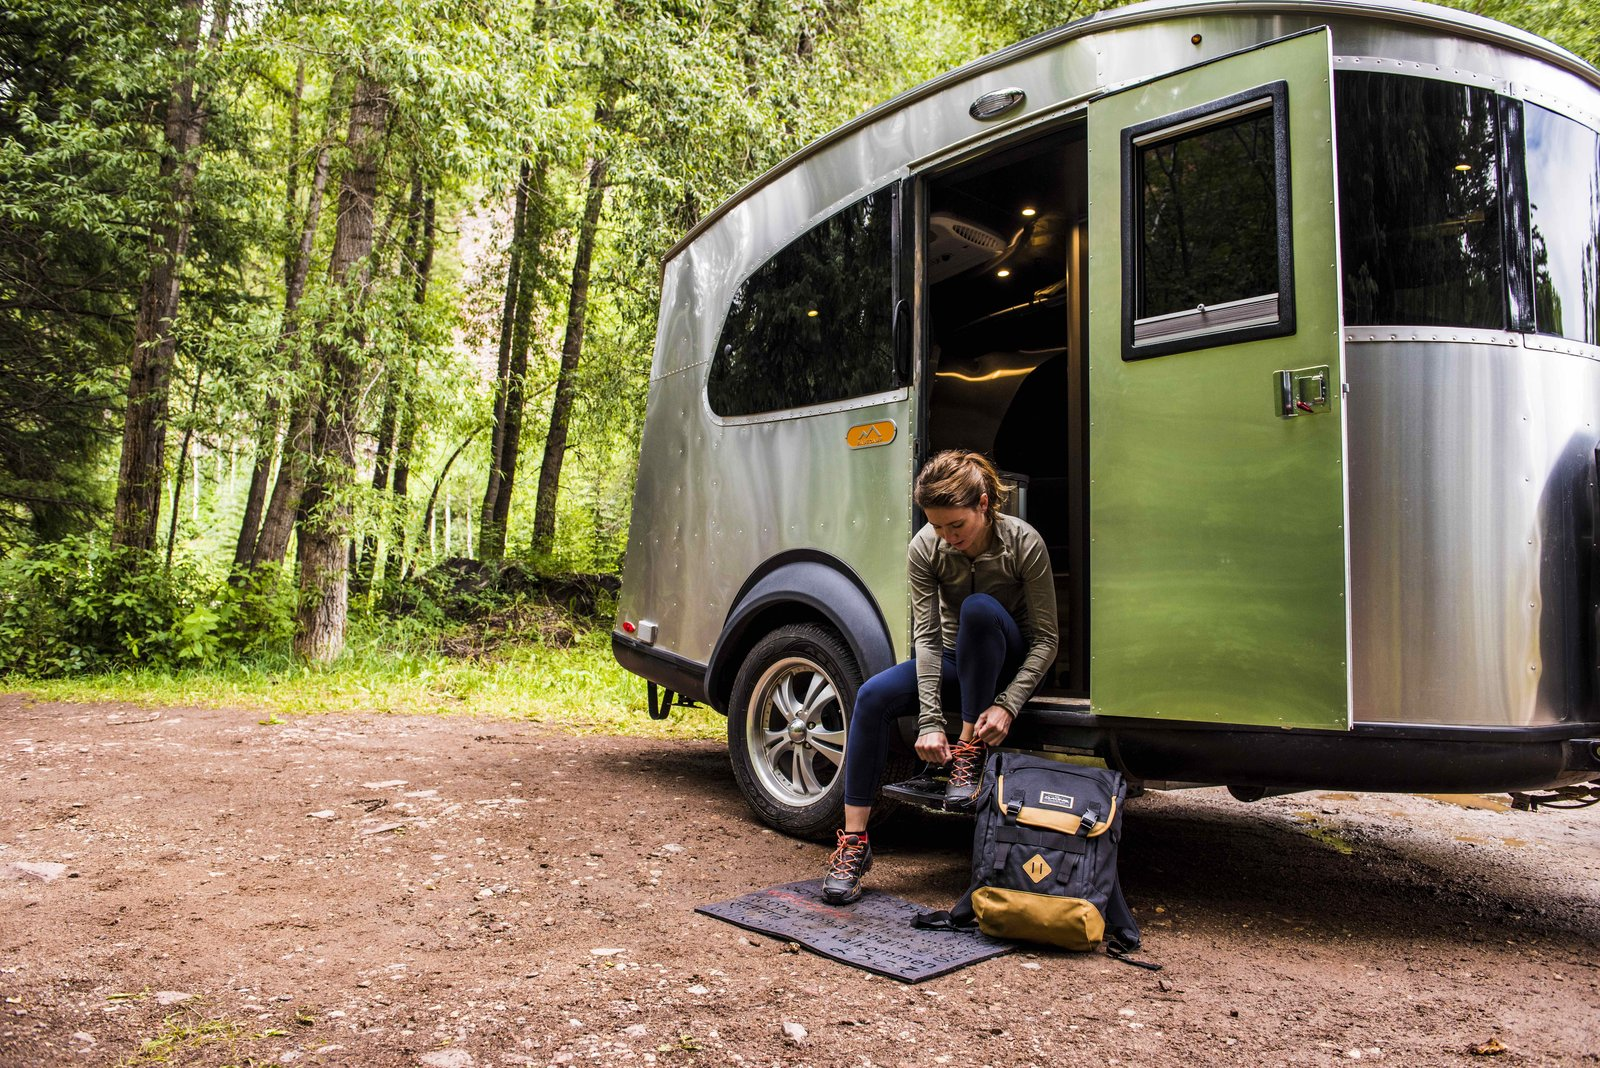 Airstream's Basecamp Is a Lightweight Trailer Stuffed With Smart Travel Solutions